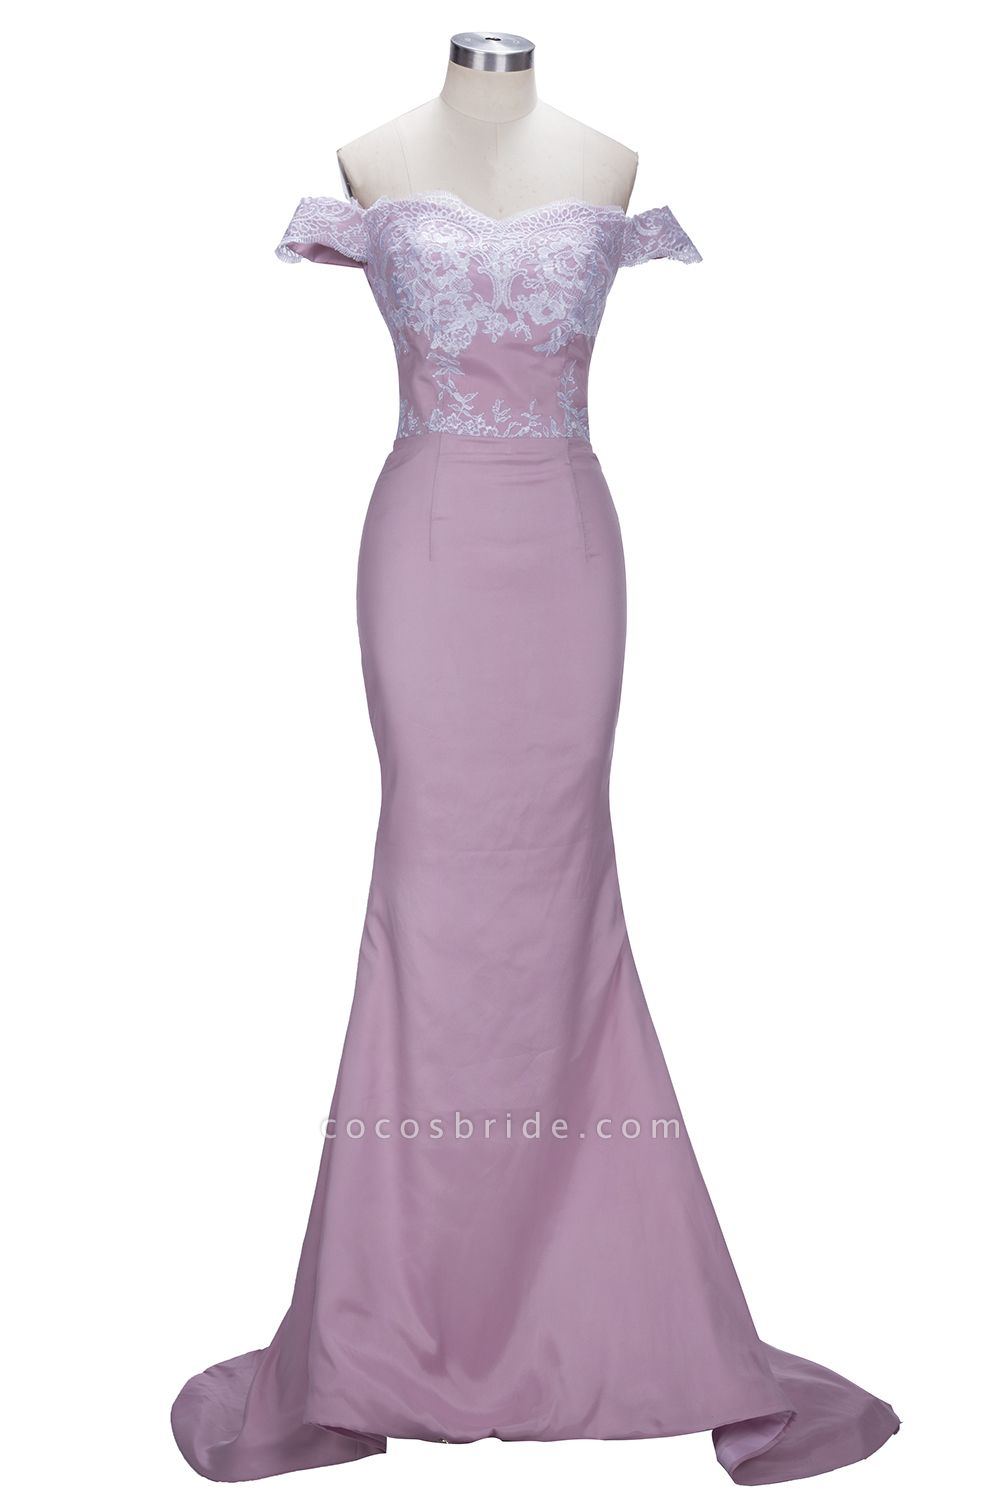 VIRGINIA | Mermaid Off-the-Shoulder Lace Appliques Blushing Pink Prom Dresses